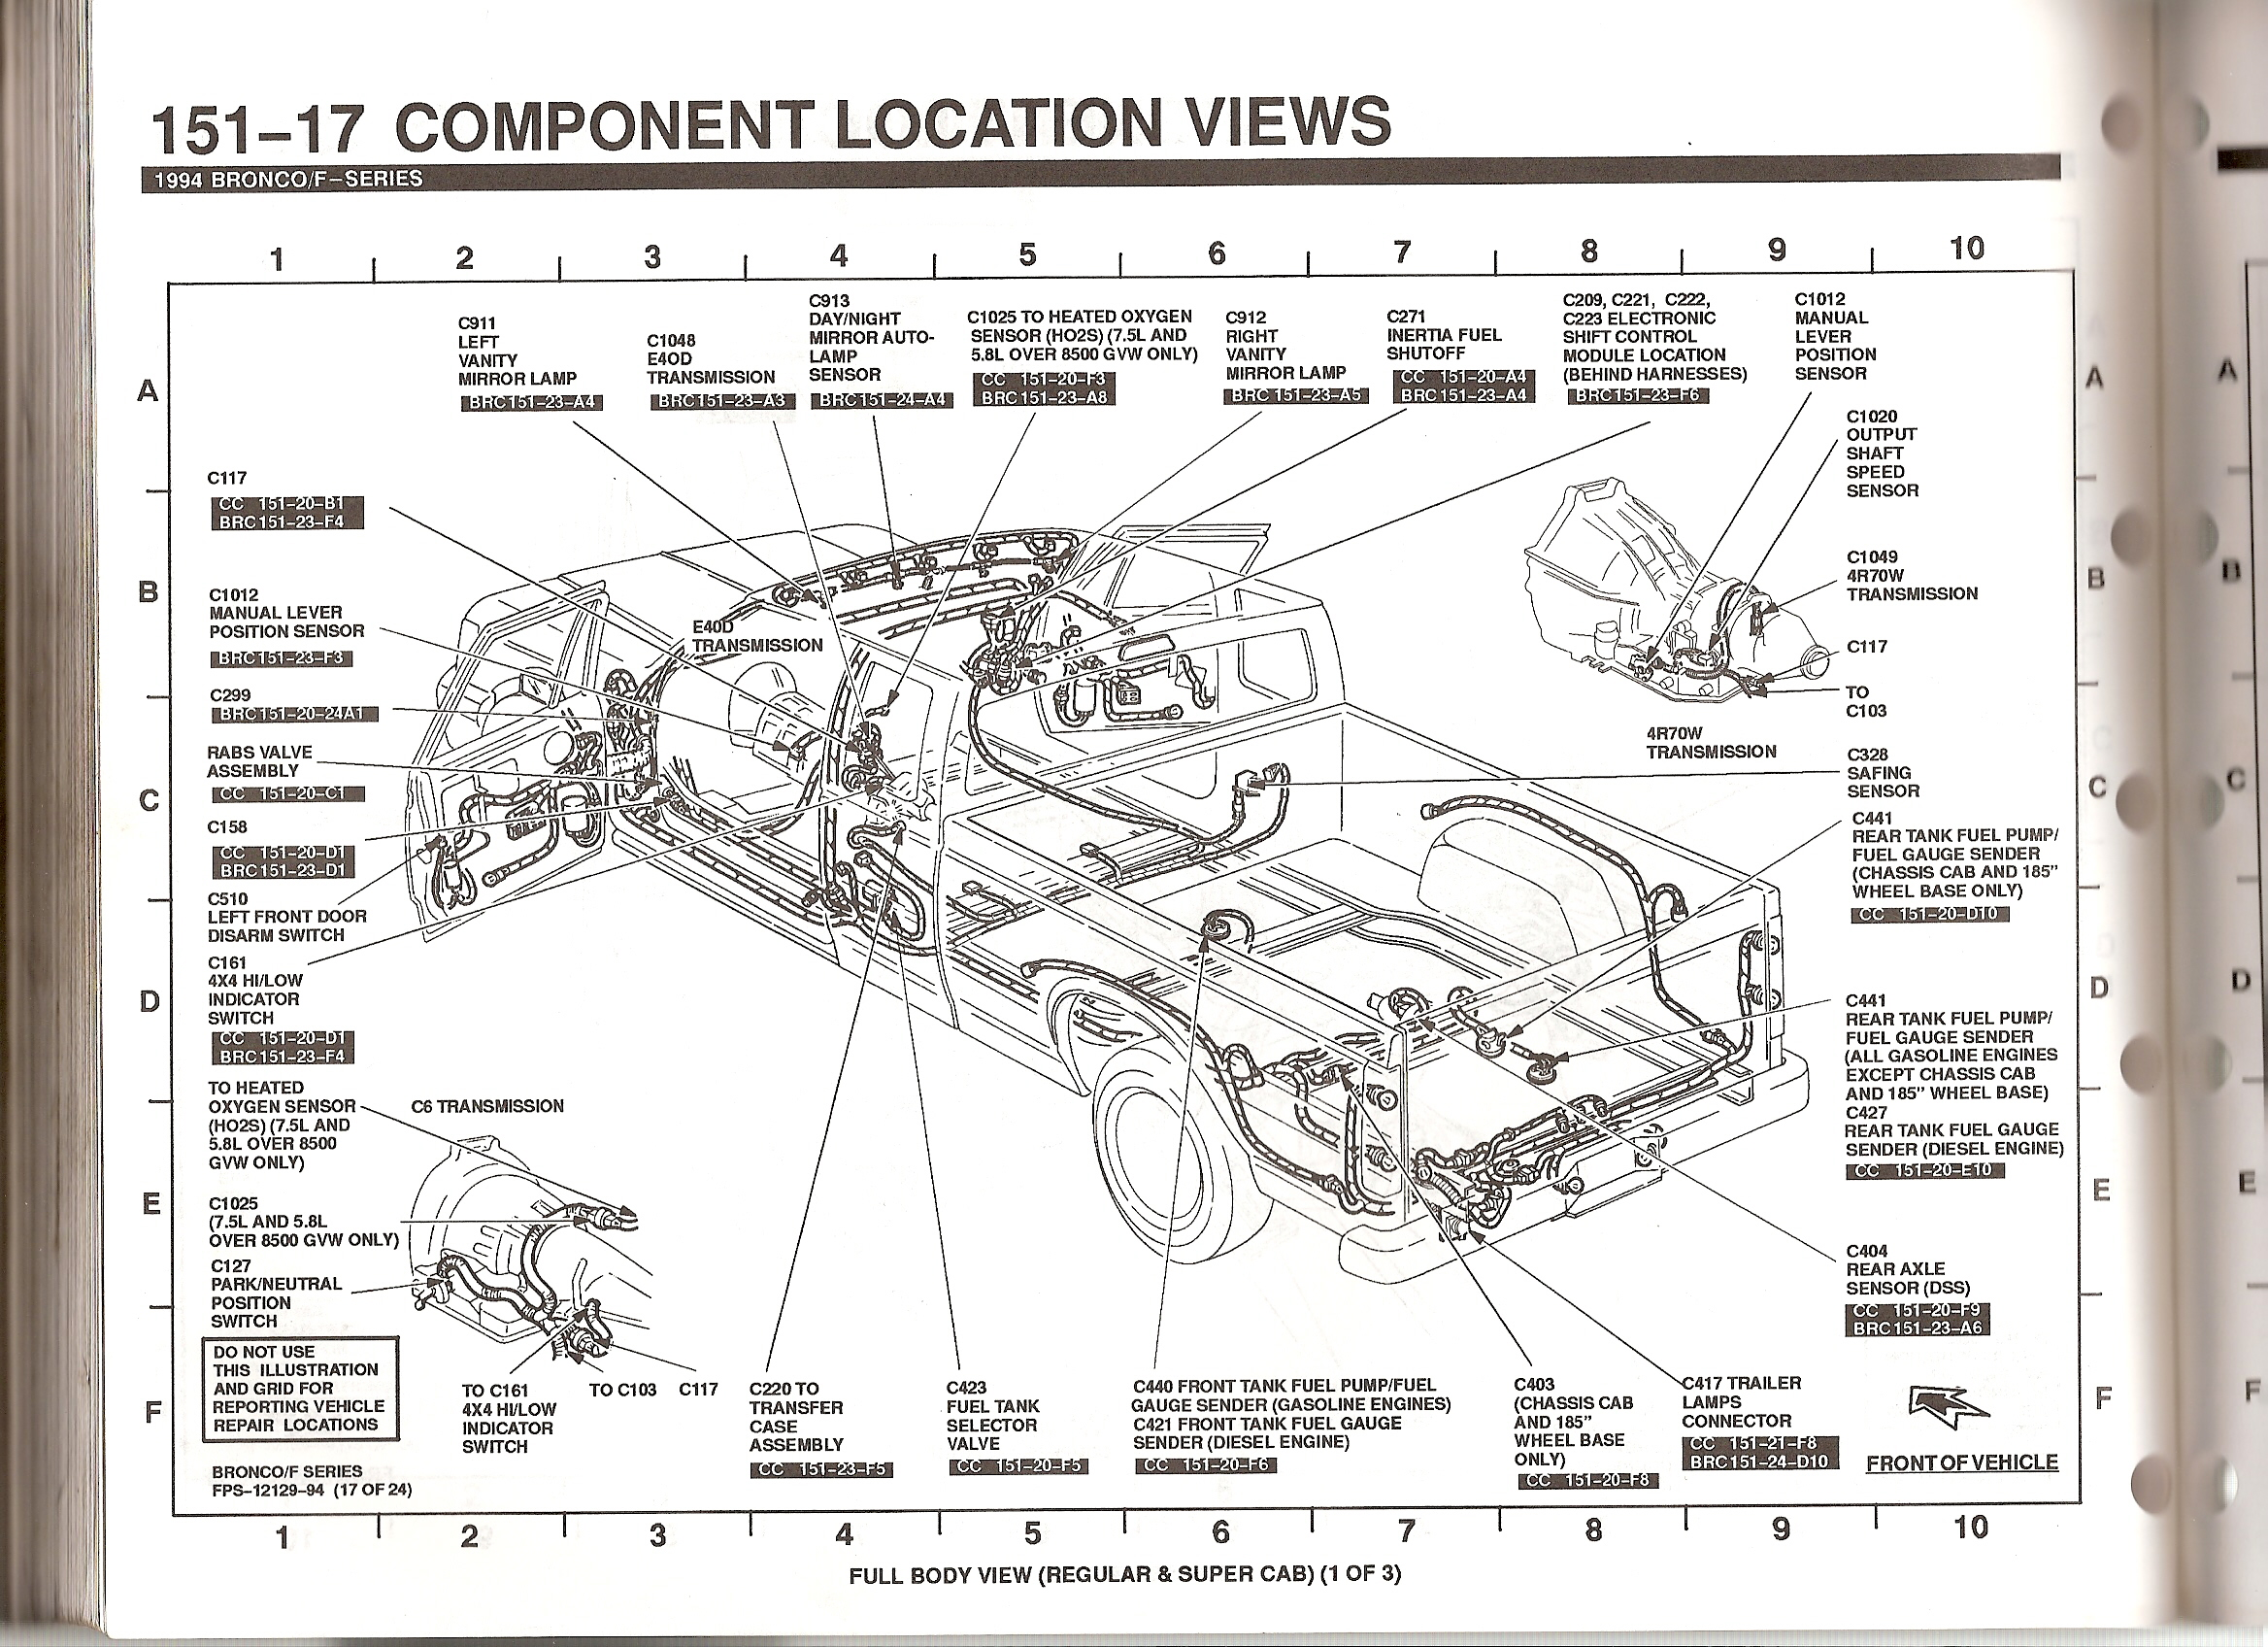 1994 Ford Bronco Overhead Console Wiring Diagram Picture 1989 Bronco Wiring  Diagram 1994 Bronco Wiring Diagram